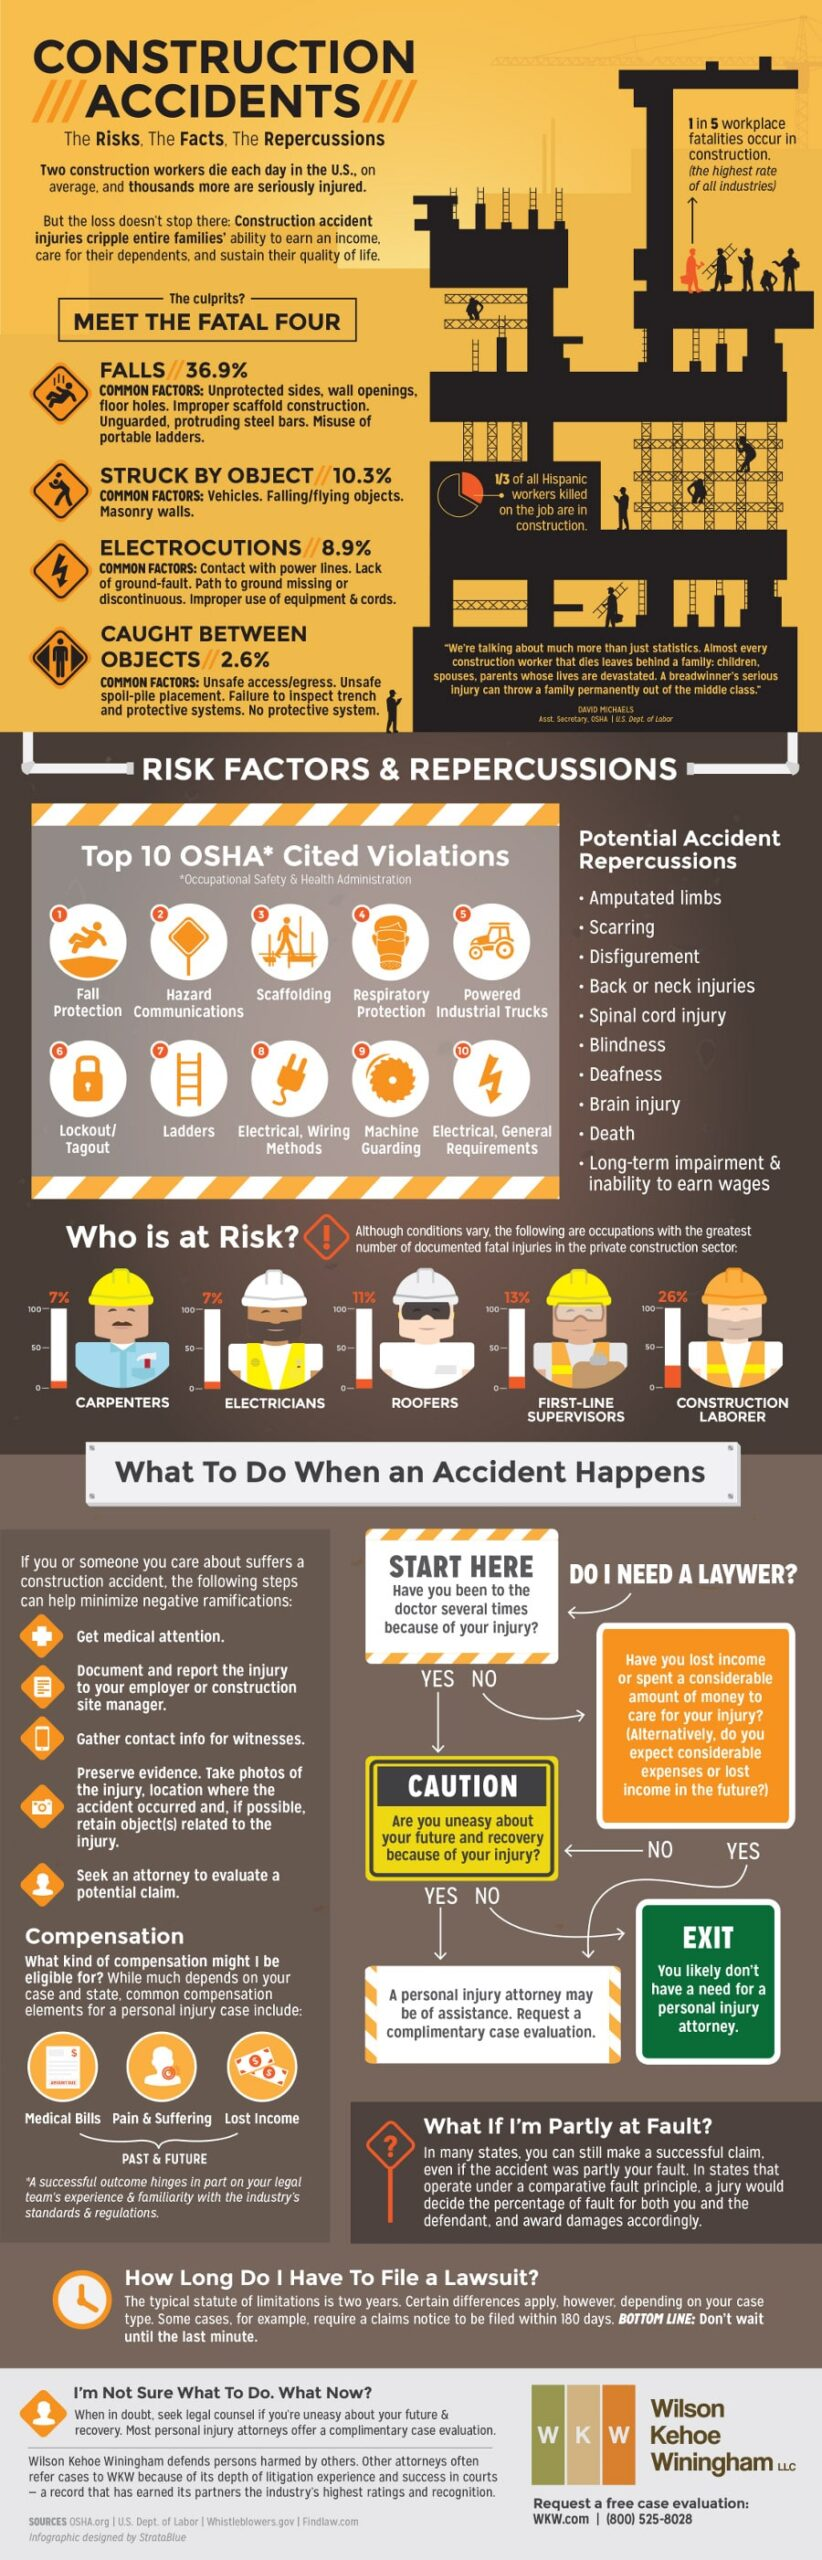 WHAT TO DO IF YOU NEED HELP WITH A CONSTRUCTION ACCIDENT CLAIM